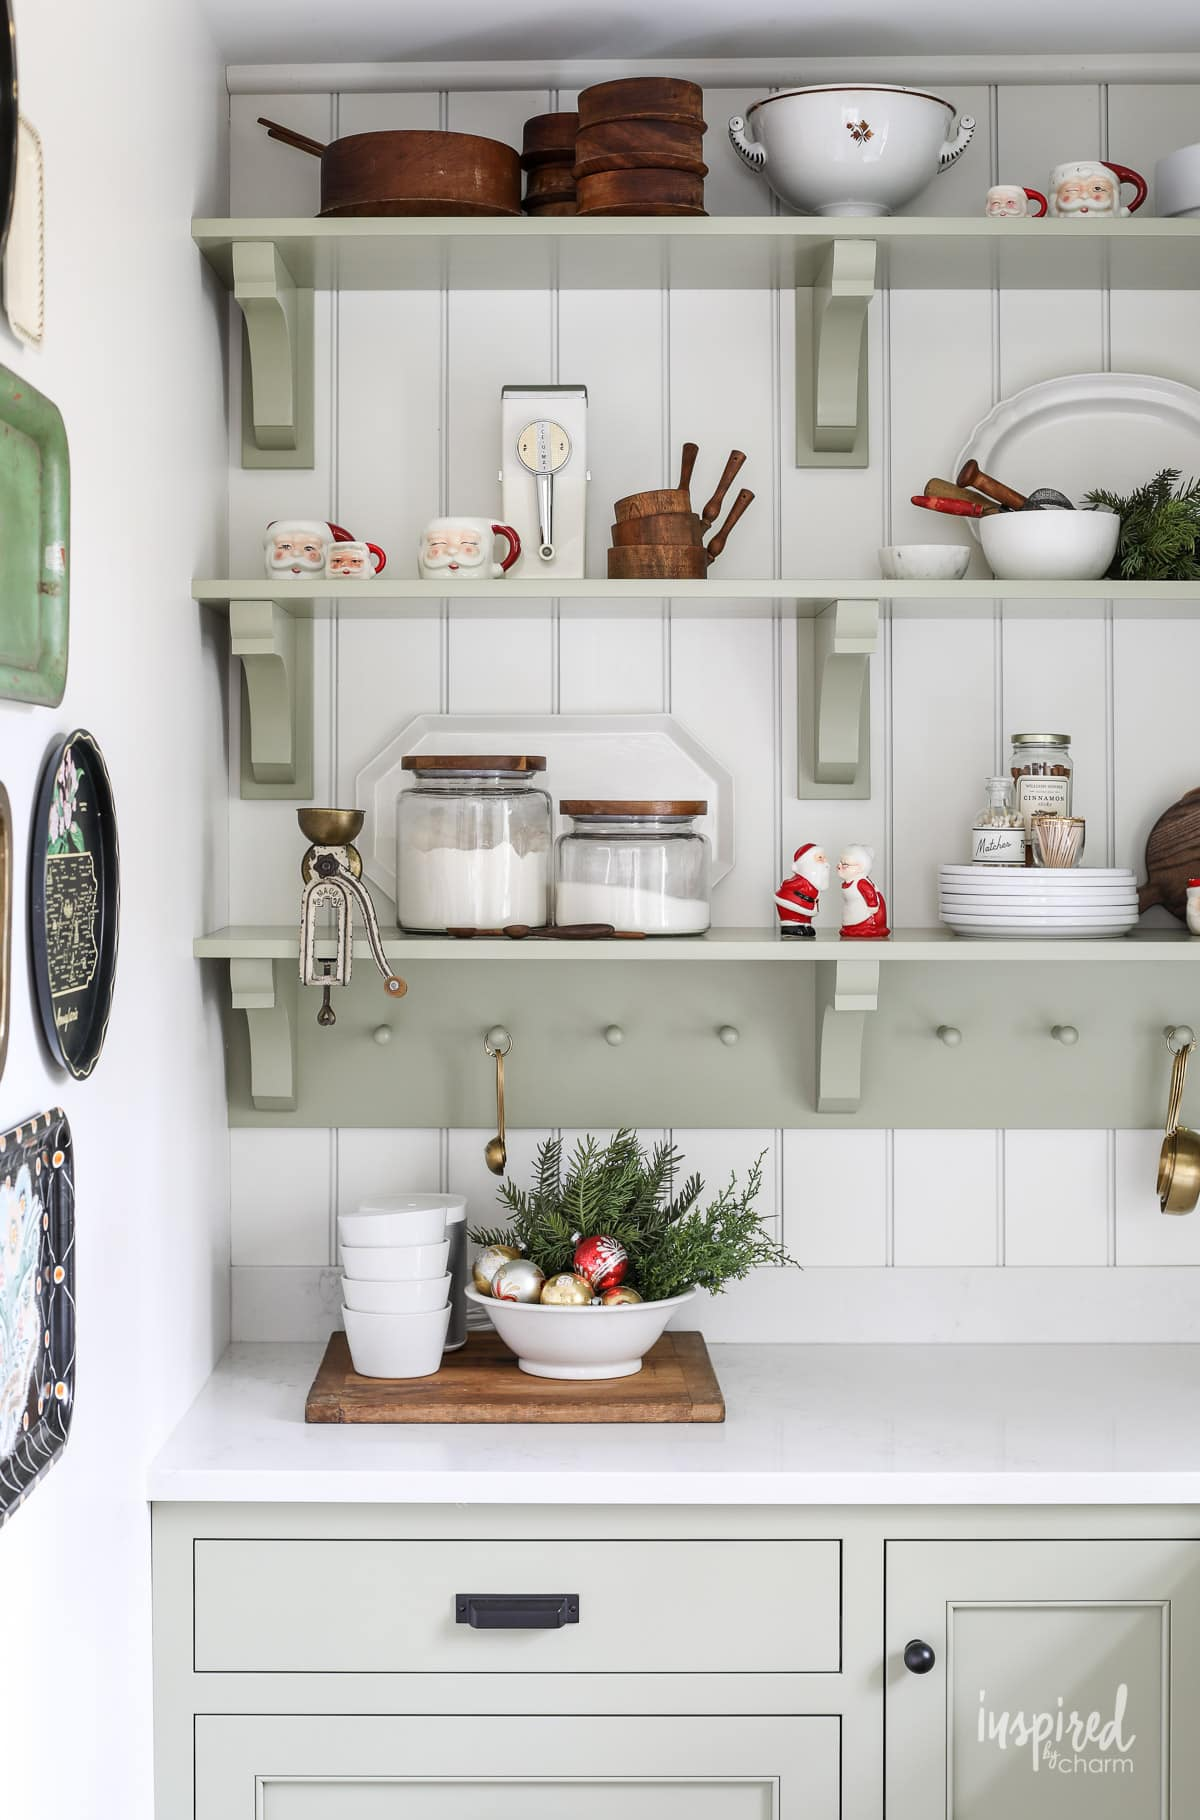 Festive Christmas Kitchen Decor Ideas and Inspiration